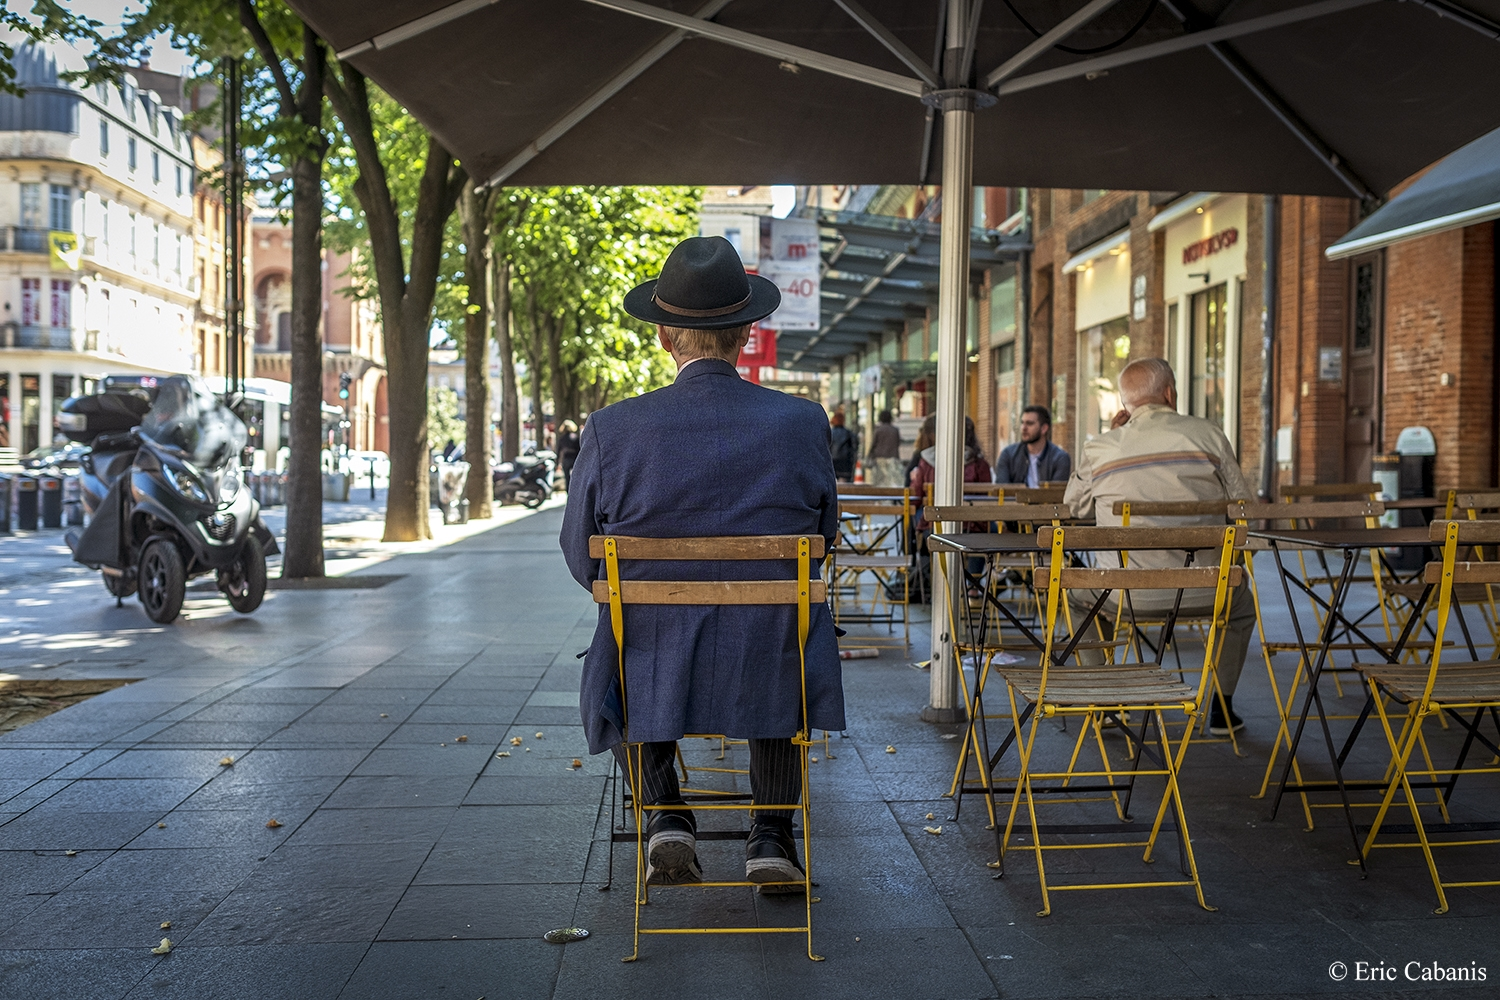 Un homme est assis à la terrasse d'un snack-bar place Esquirol à Toulouse le 15 mai 2019 A man sits on the terrace of a snack bar on Place Esquirol in Toulouse on 15 May 2019 Photojournalism Streetphotography Eric Cabanis